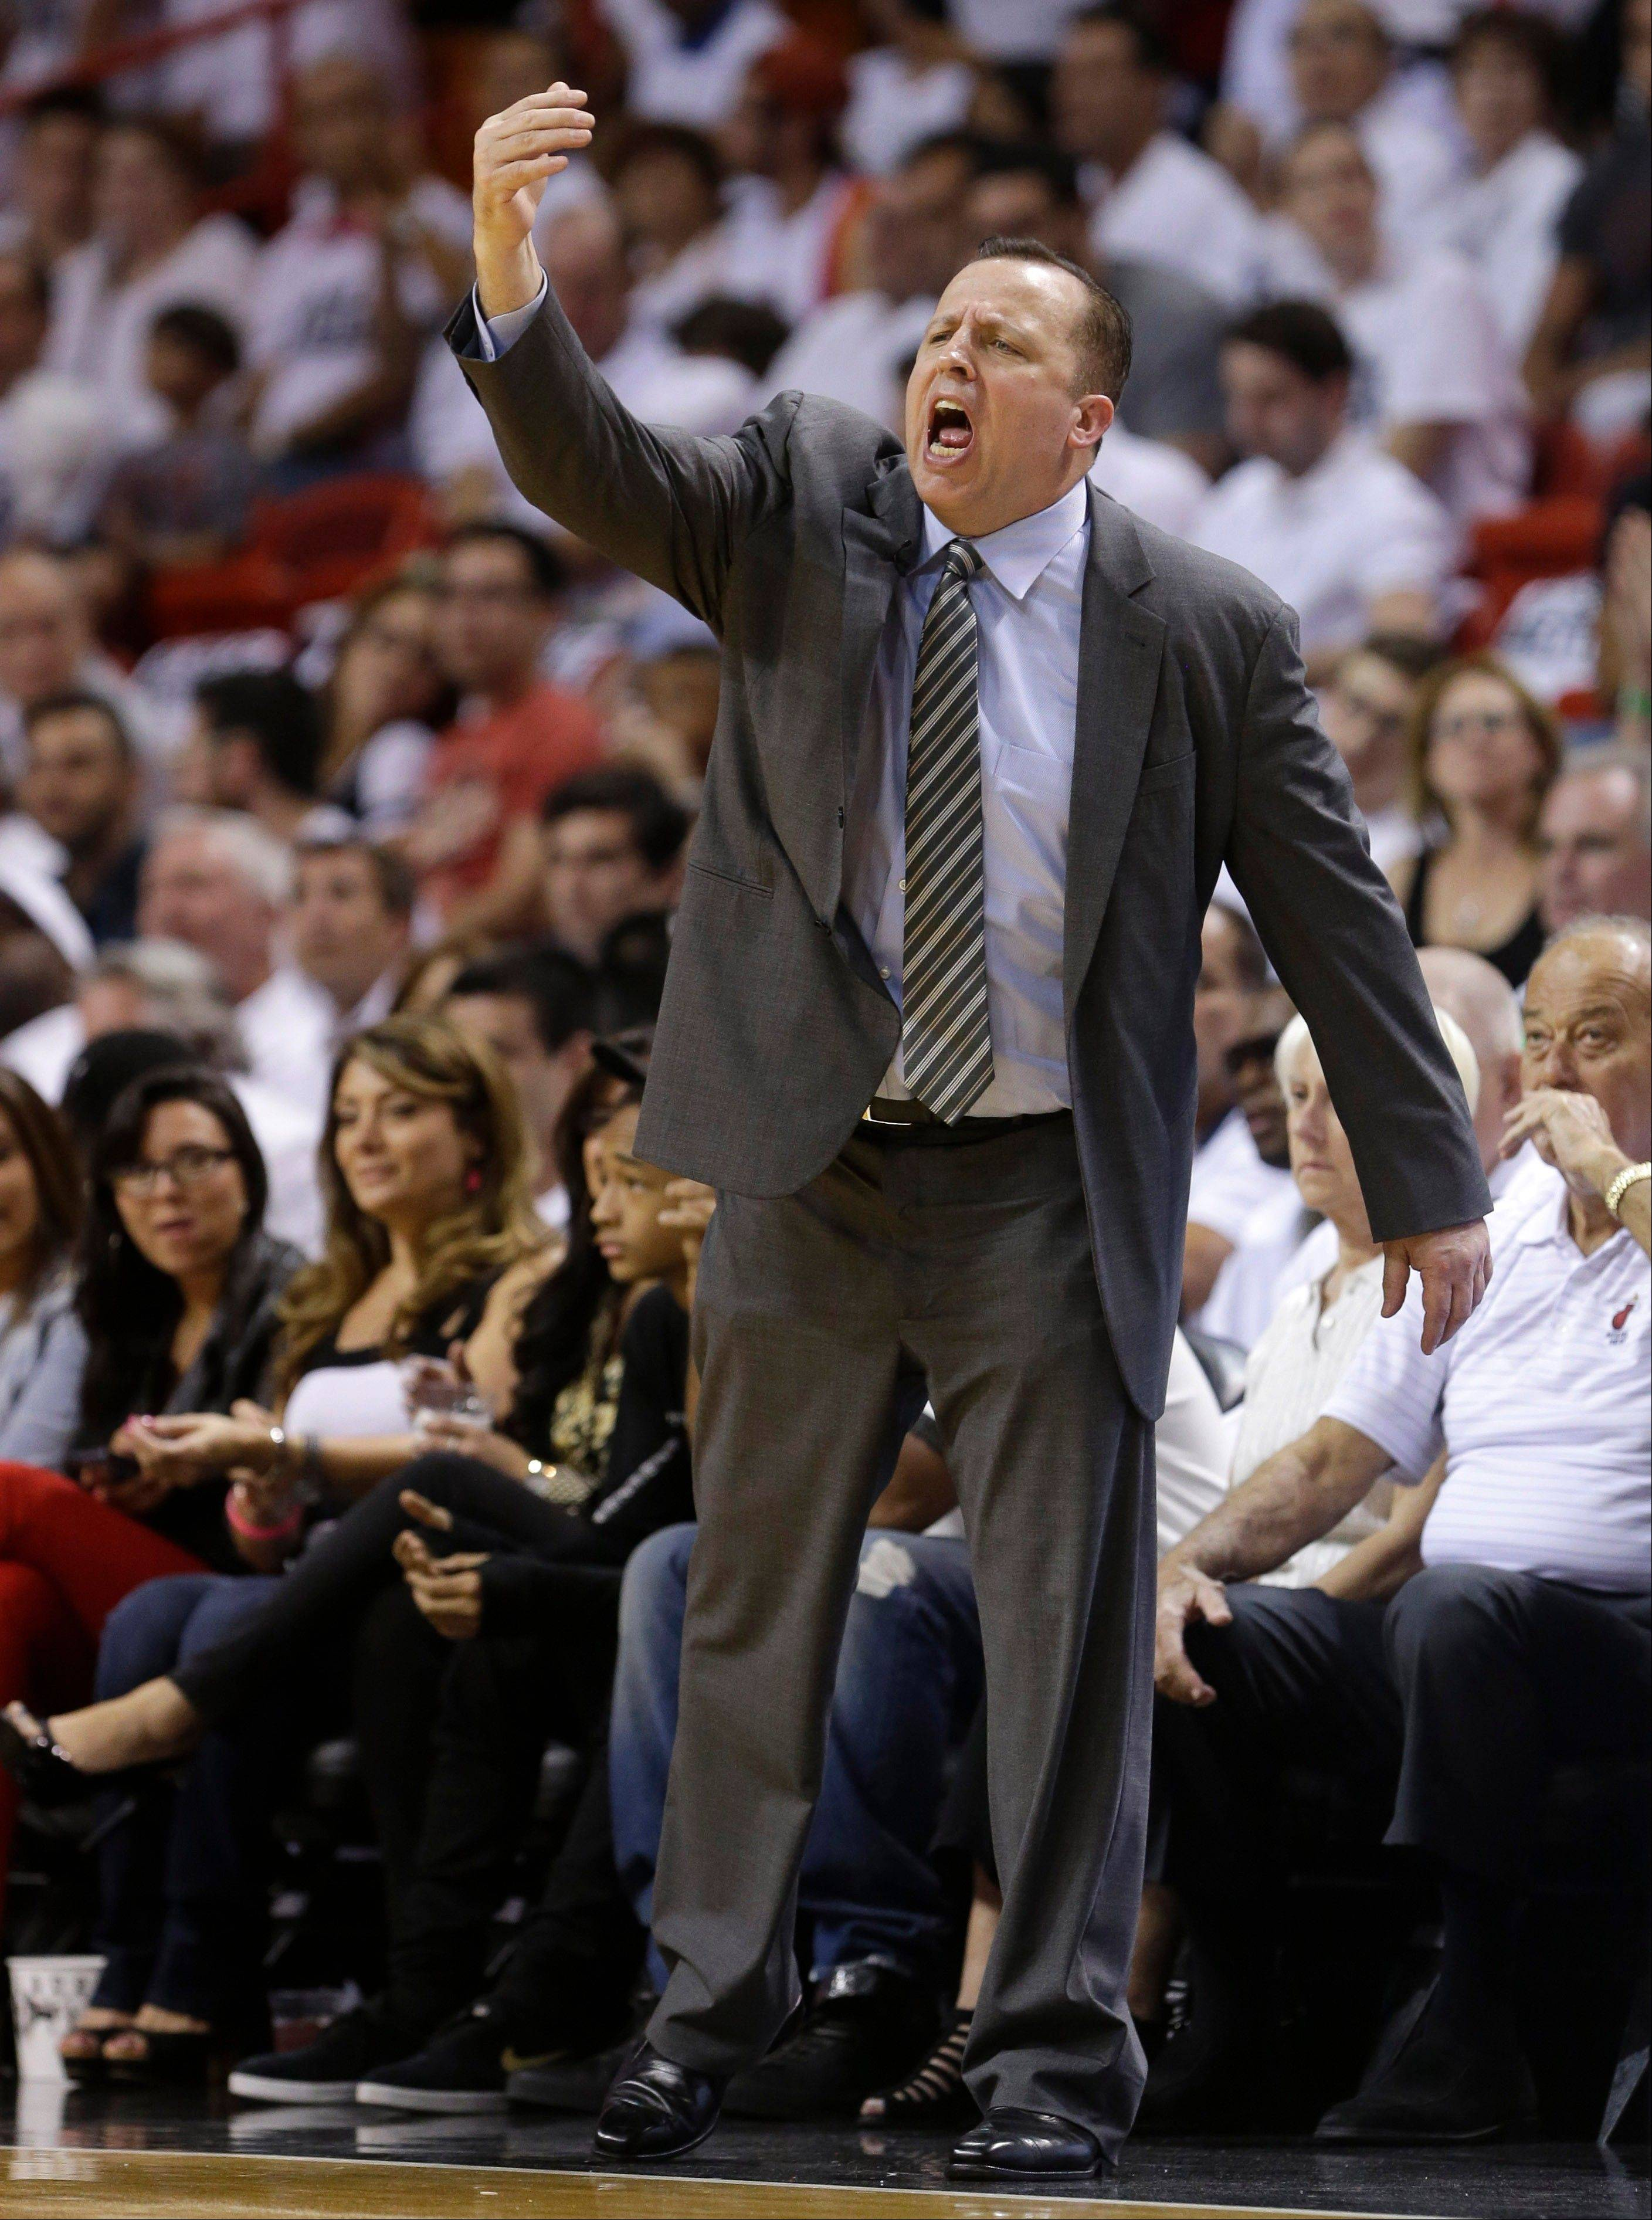 Chicago Bulls coach Tom Thibodeau gestures during the first half of Game 5 of an NBA basketball Eastern Conference semifinal against the Miami Heat, Wednesday, May 15, 2013, in Miami.